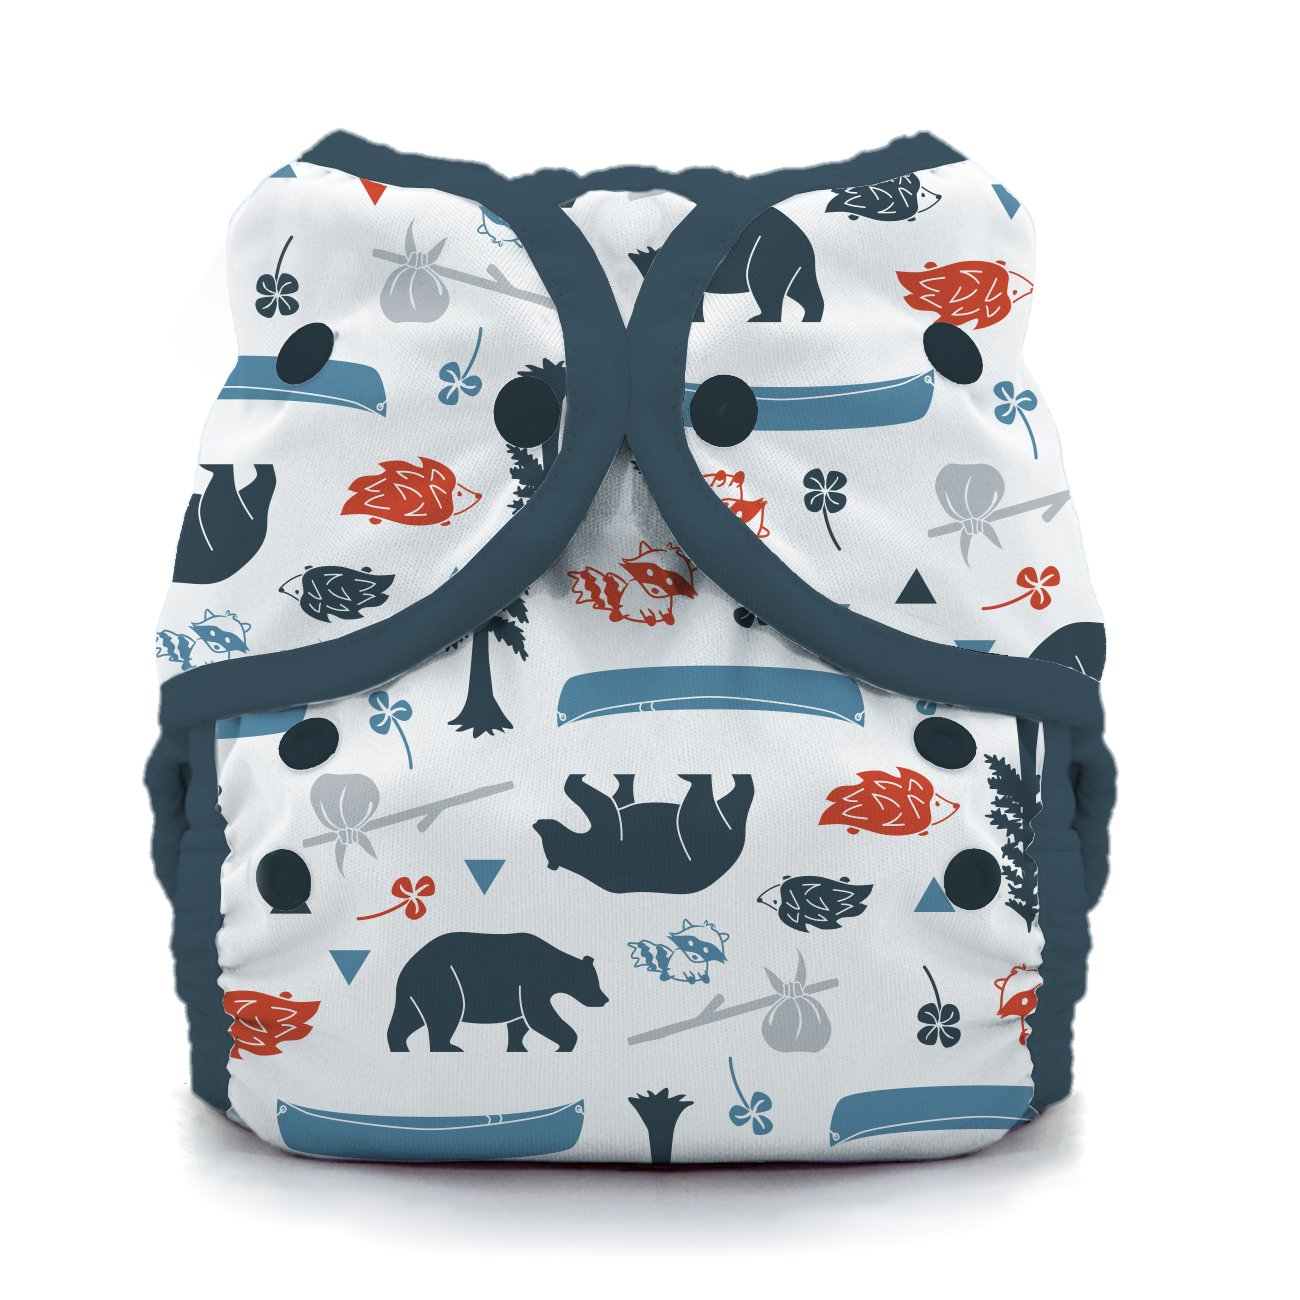 Thirsties Duo Wrap Cloth Diaper Cover, Snap Closure, Adventure Trail, Size 1 (6-18 lbs) by Thirsties